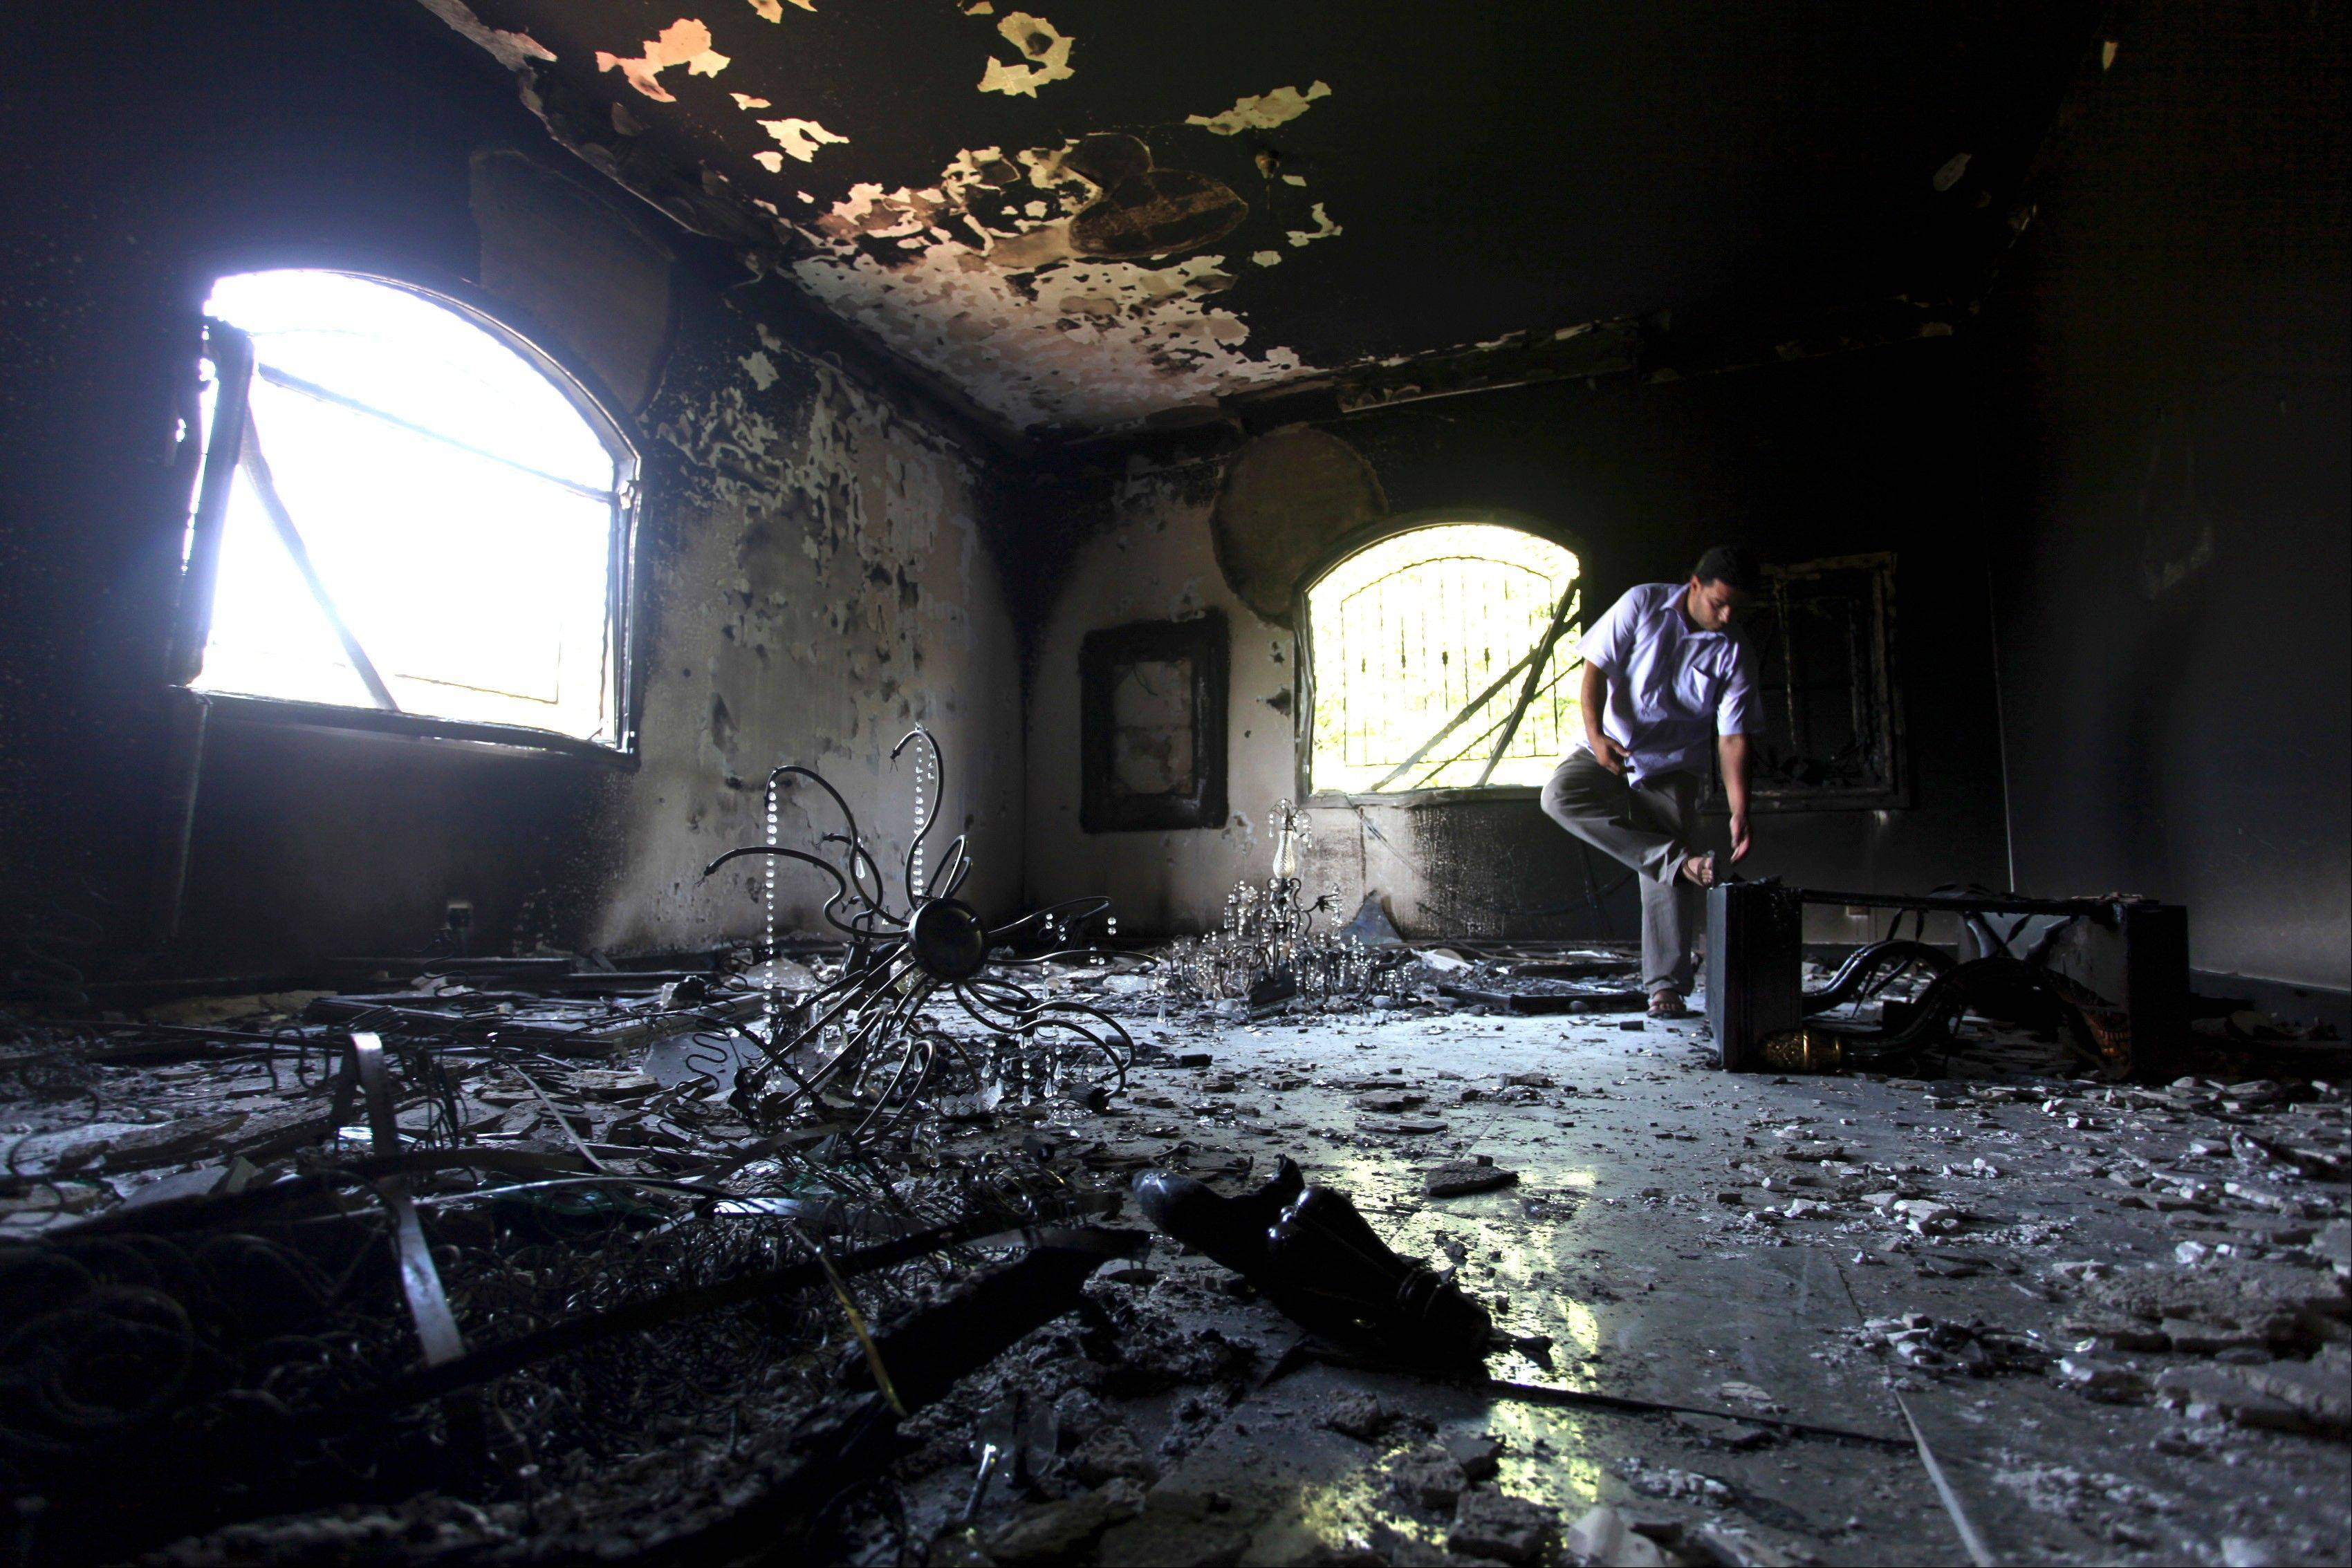 In this Sept. 13, 2012 file photo, a Libyan man investigates the inside of the U.S. Consulate, after an attack that killed four Americans, including Ambassador C